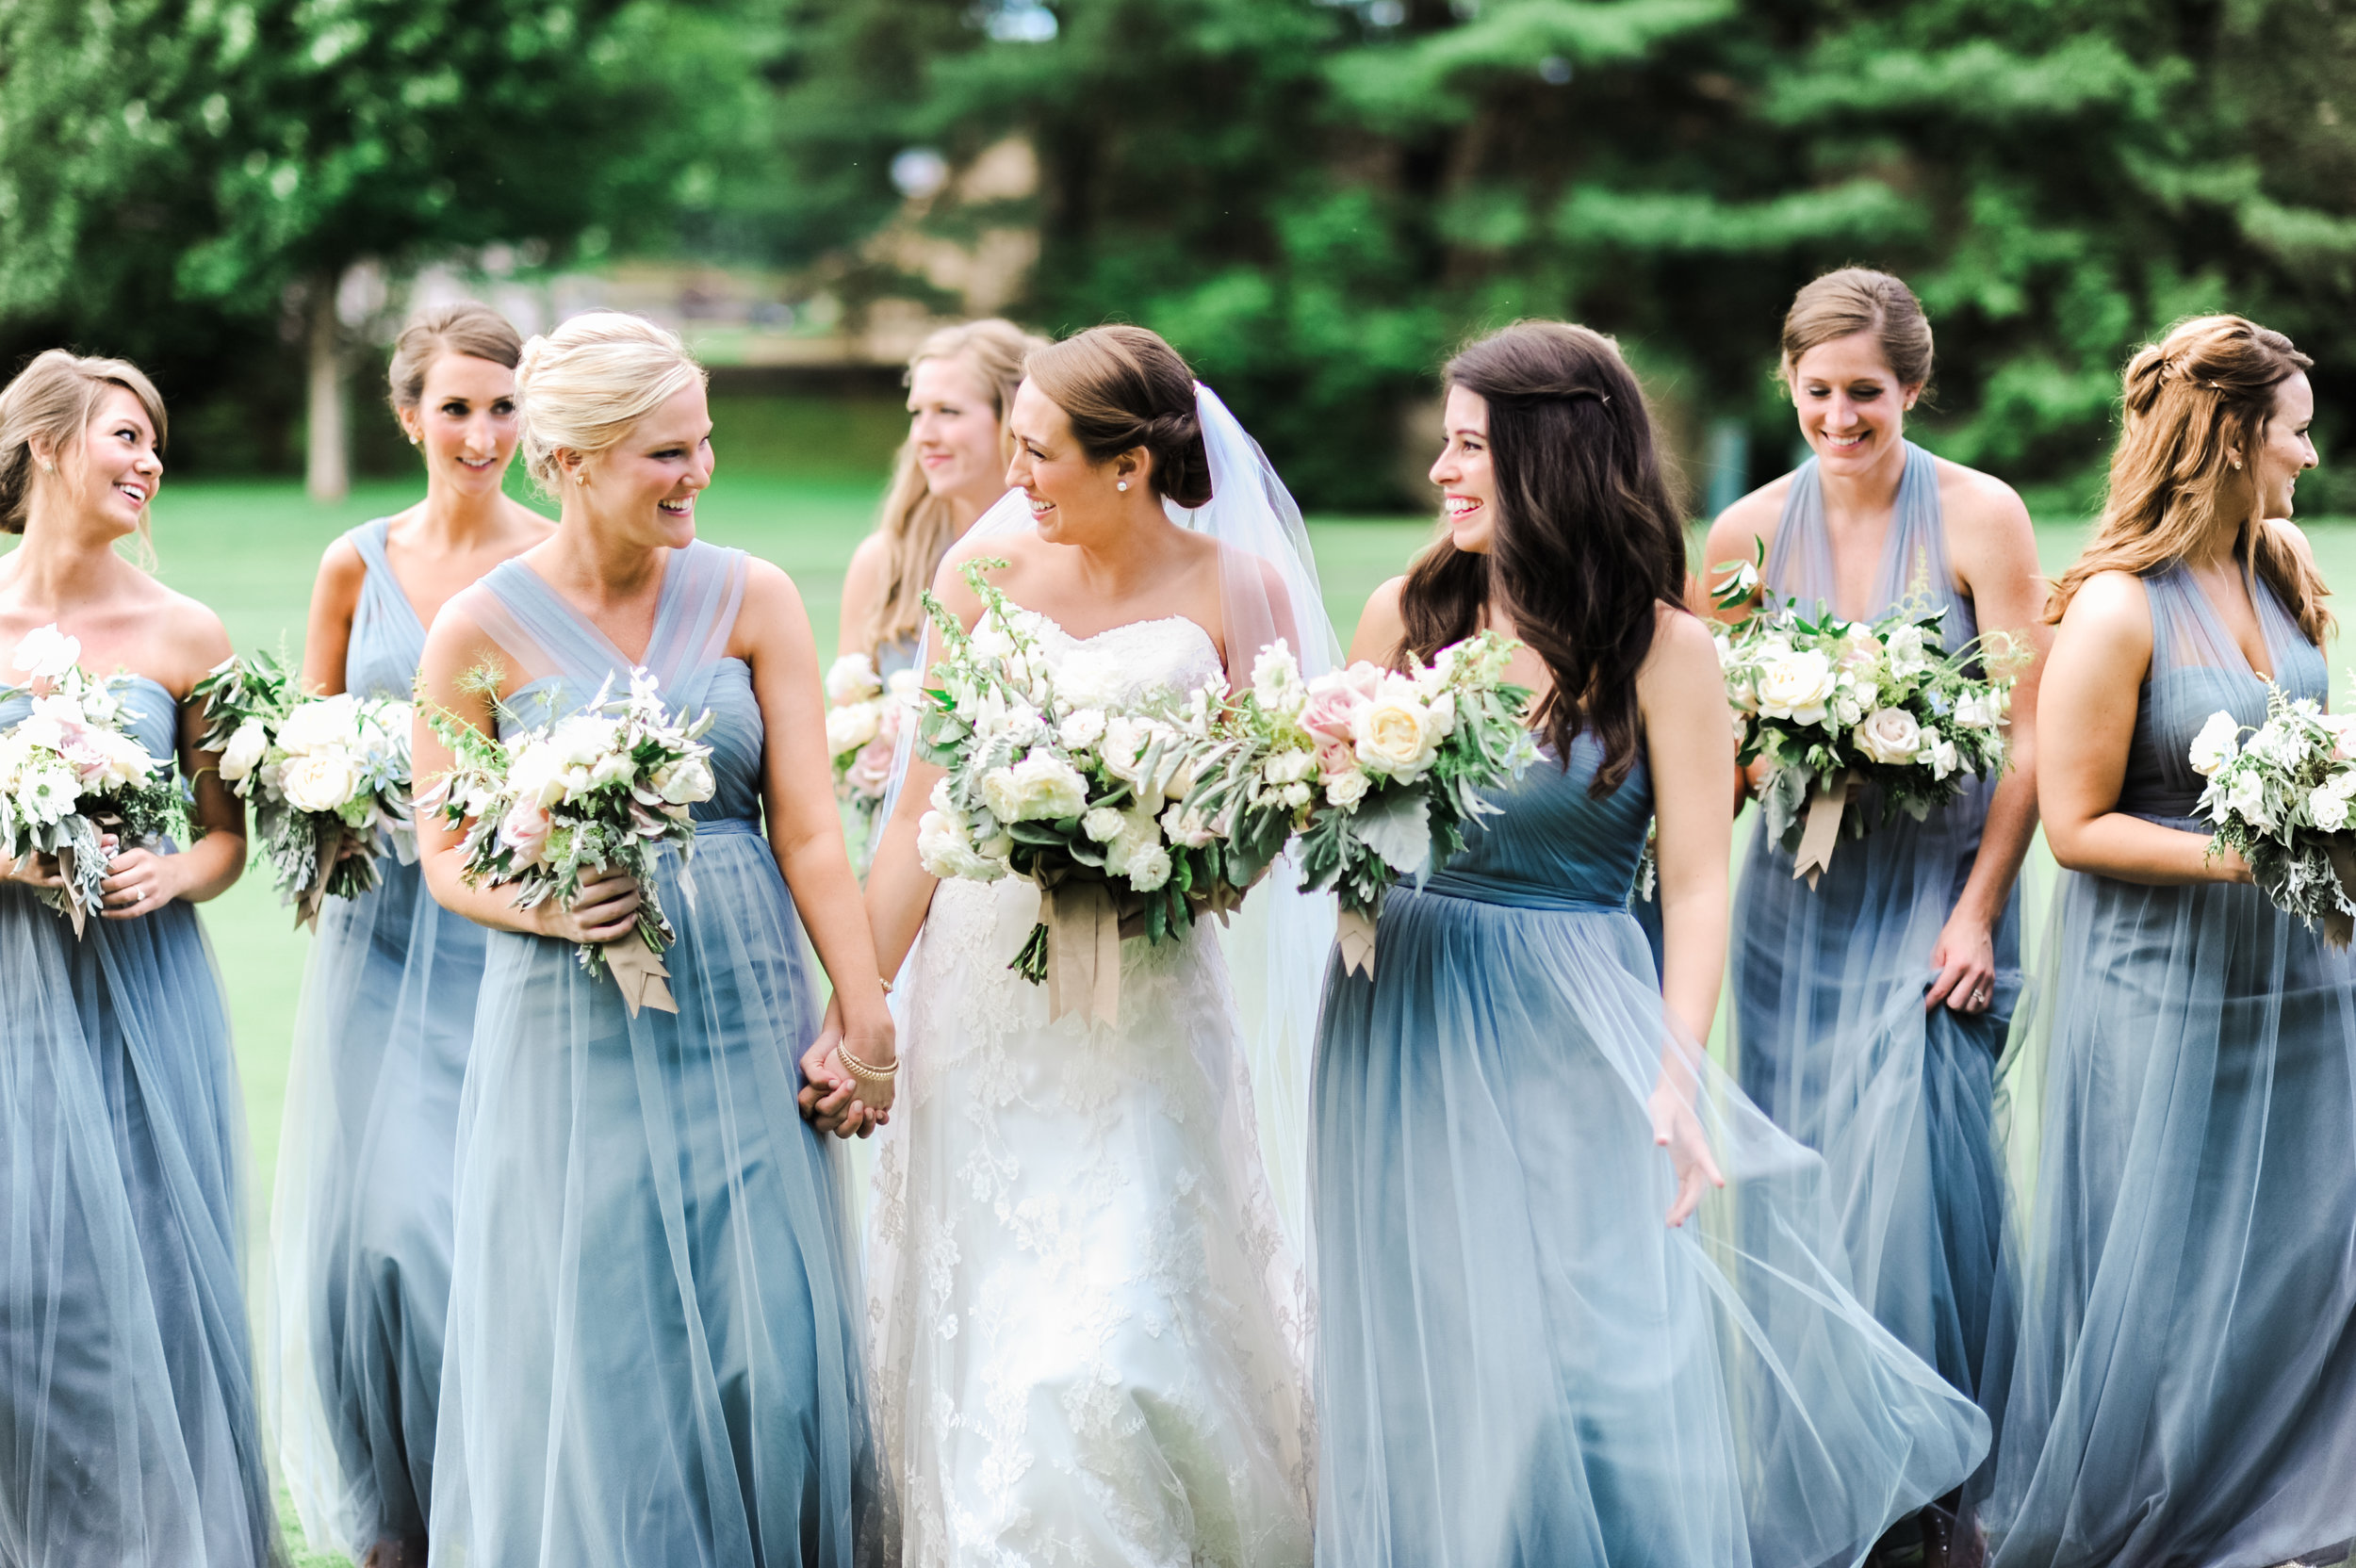 Destination wedding photographer Marcie Meredith. Boone NC wedding at Blowing Rock Country Club.